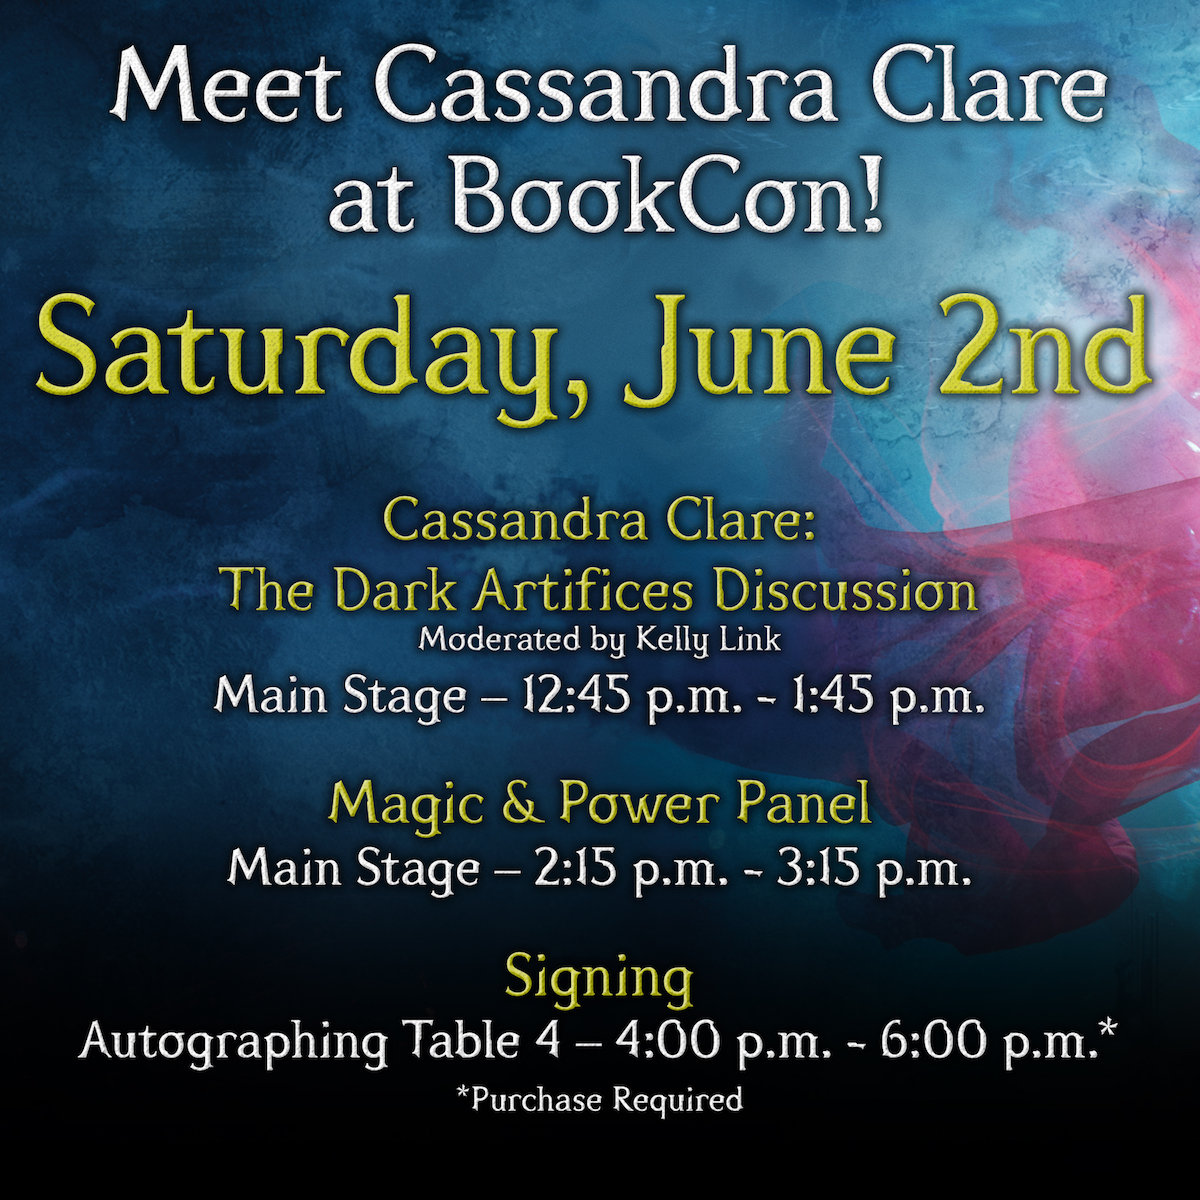 Meet Cassandra Clare at BookCon! |  Saturday, June 2nd |   Cassandra Clare: The Dark Artifices Discussion |  Moderated by Kelly Link |  Main Stage - 12:45pm - 1:45pm |   Magic & Power Panel |  Main Stage - 2:15pm - 3:15pm |   Signing |  Autographing Table 4 - 4:00pm - 6:00pm |  (purchase required)